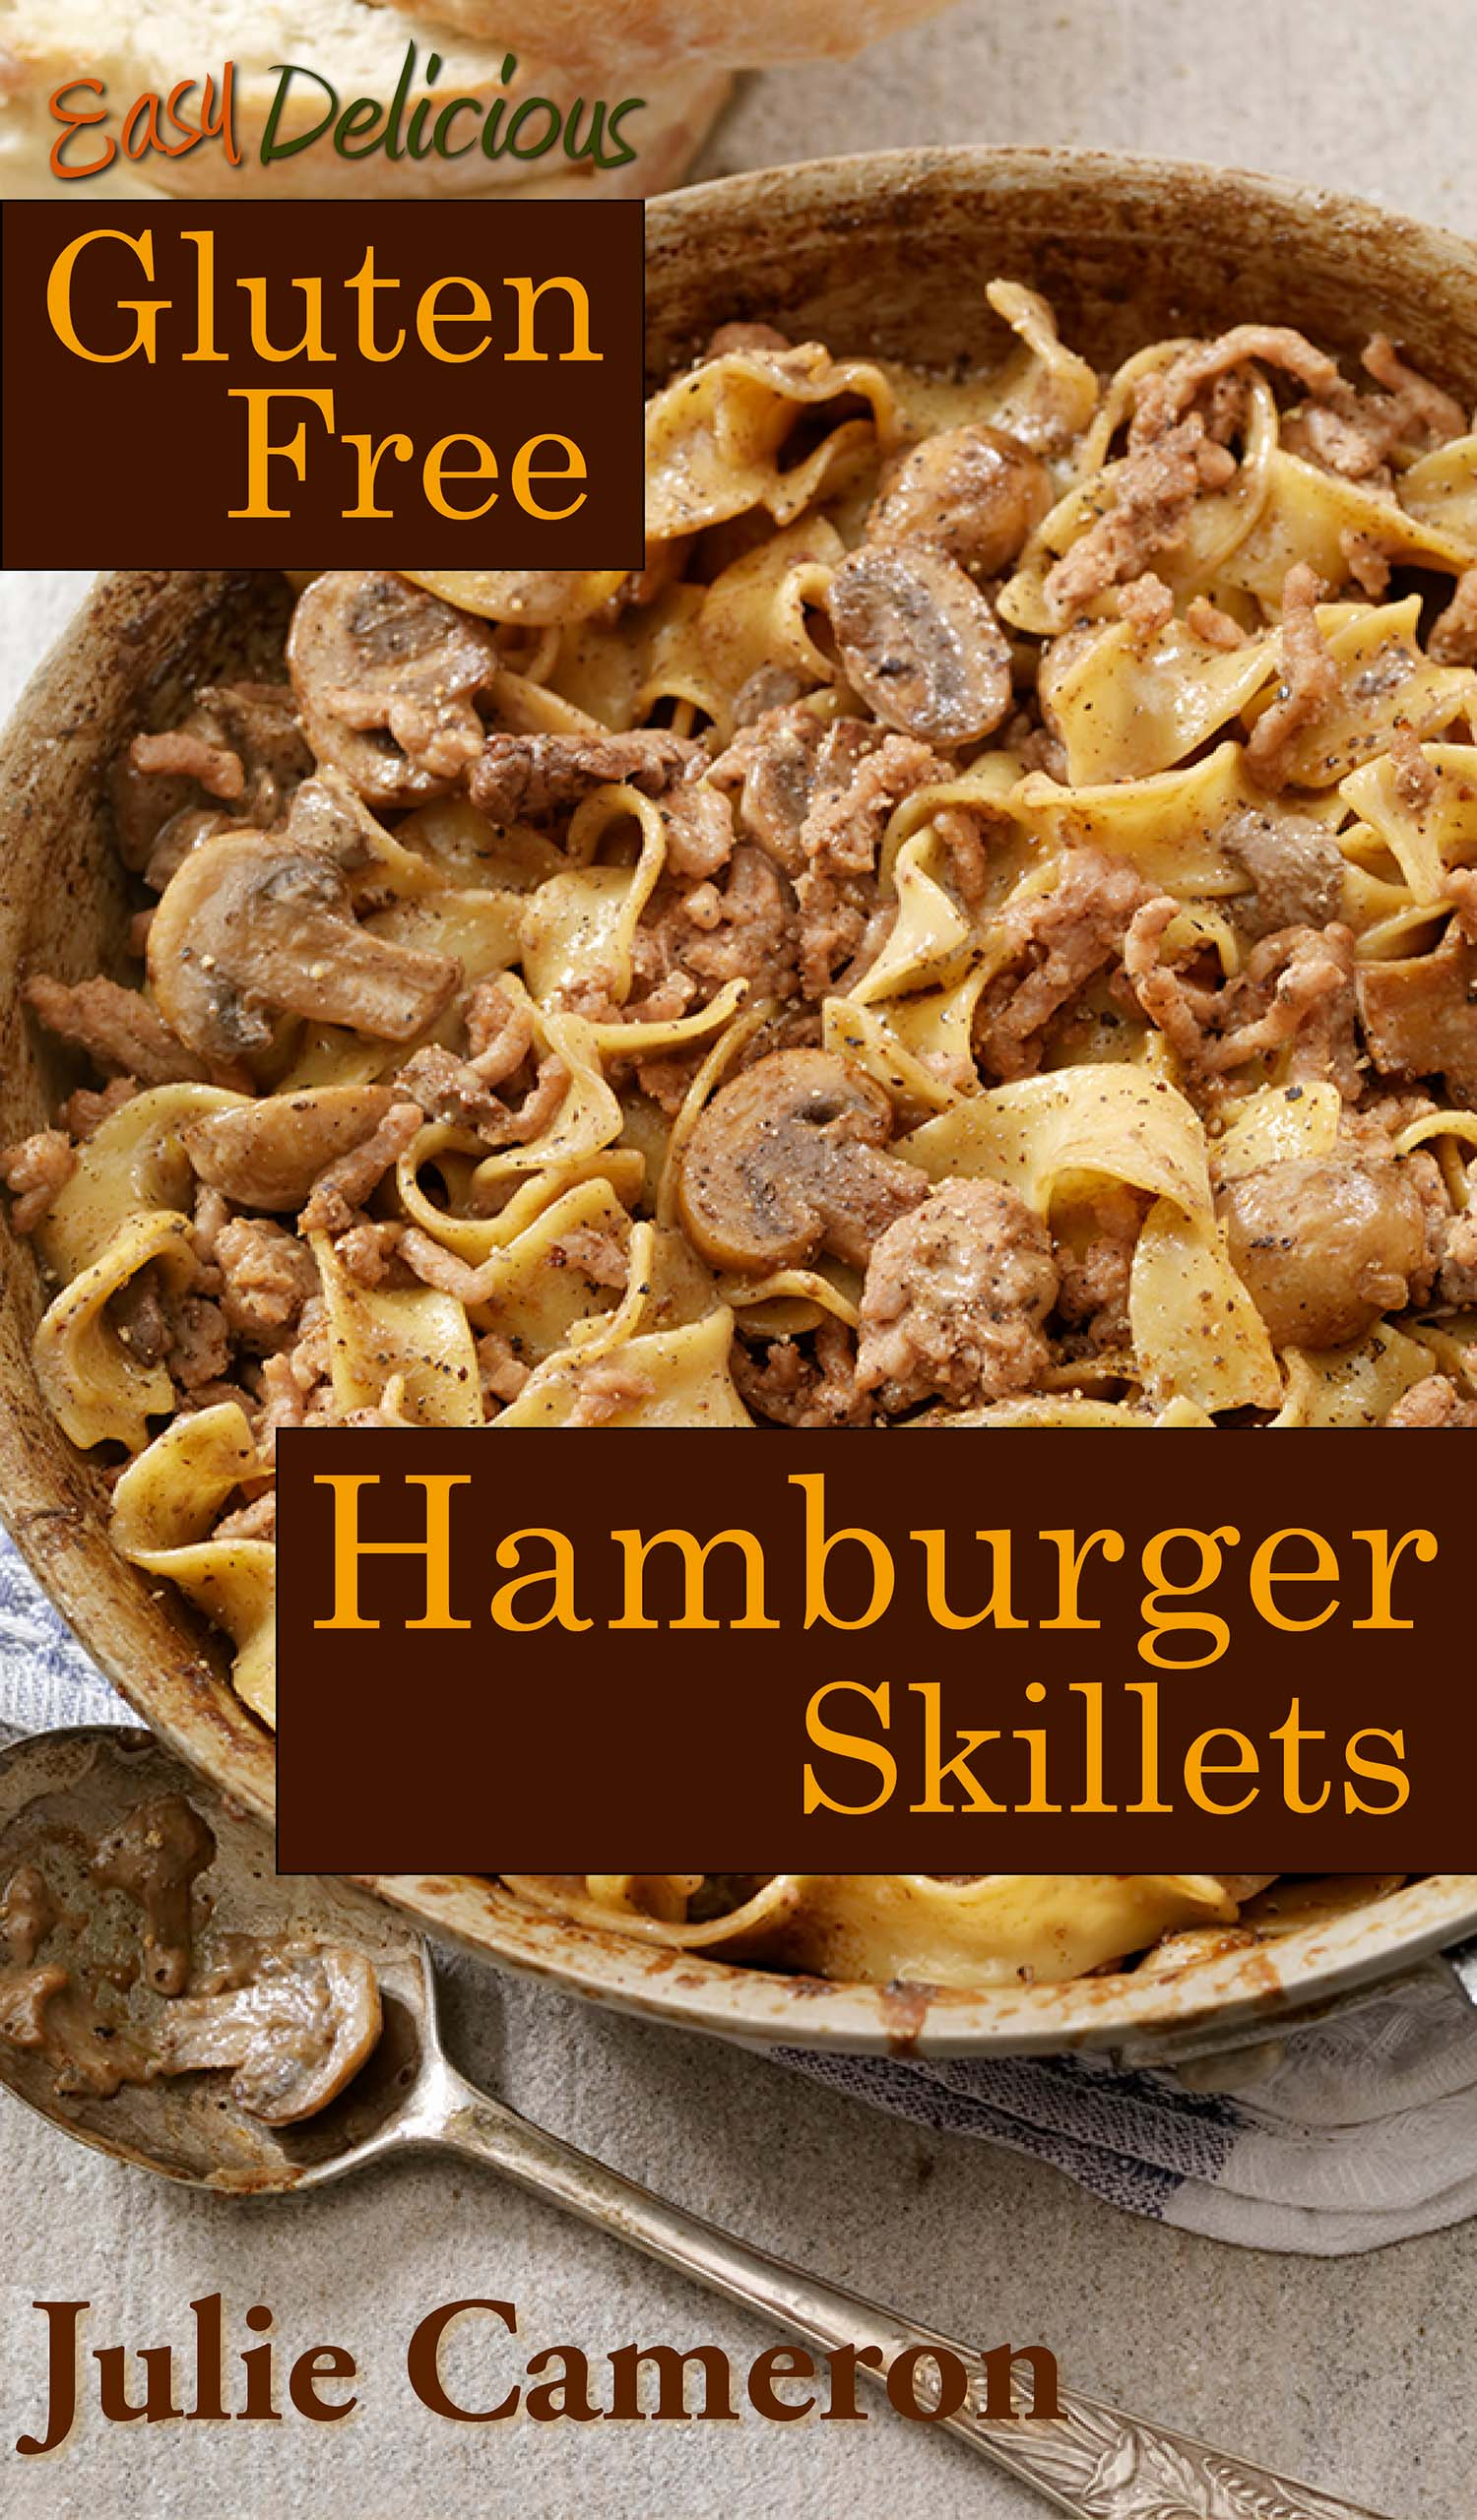 Easy Delicious Gluten-free Hamburger Skillets by Julie Cameron